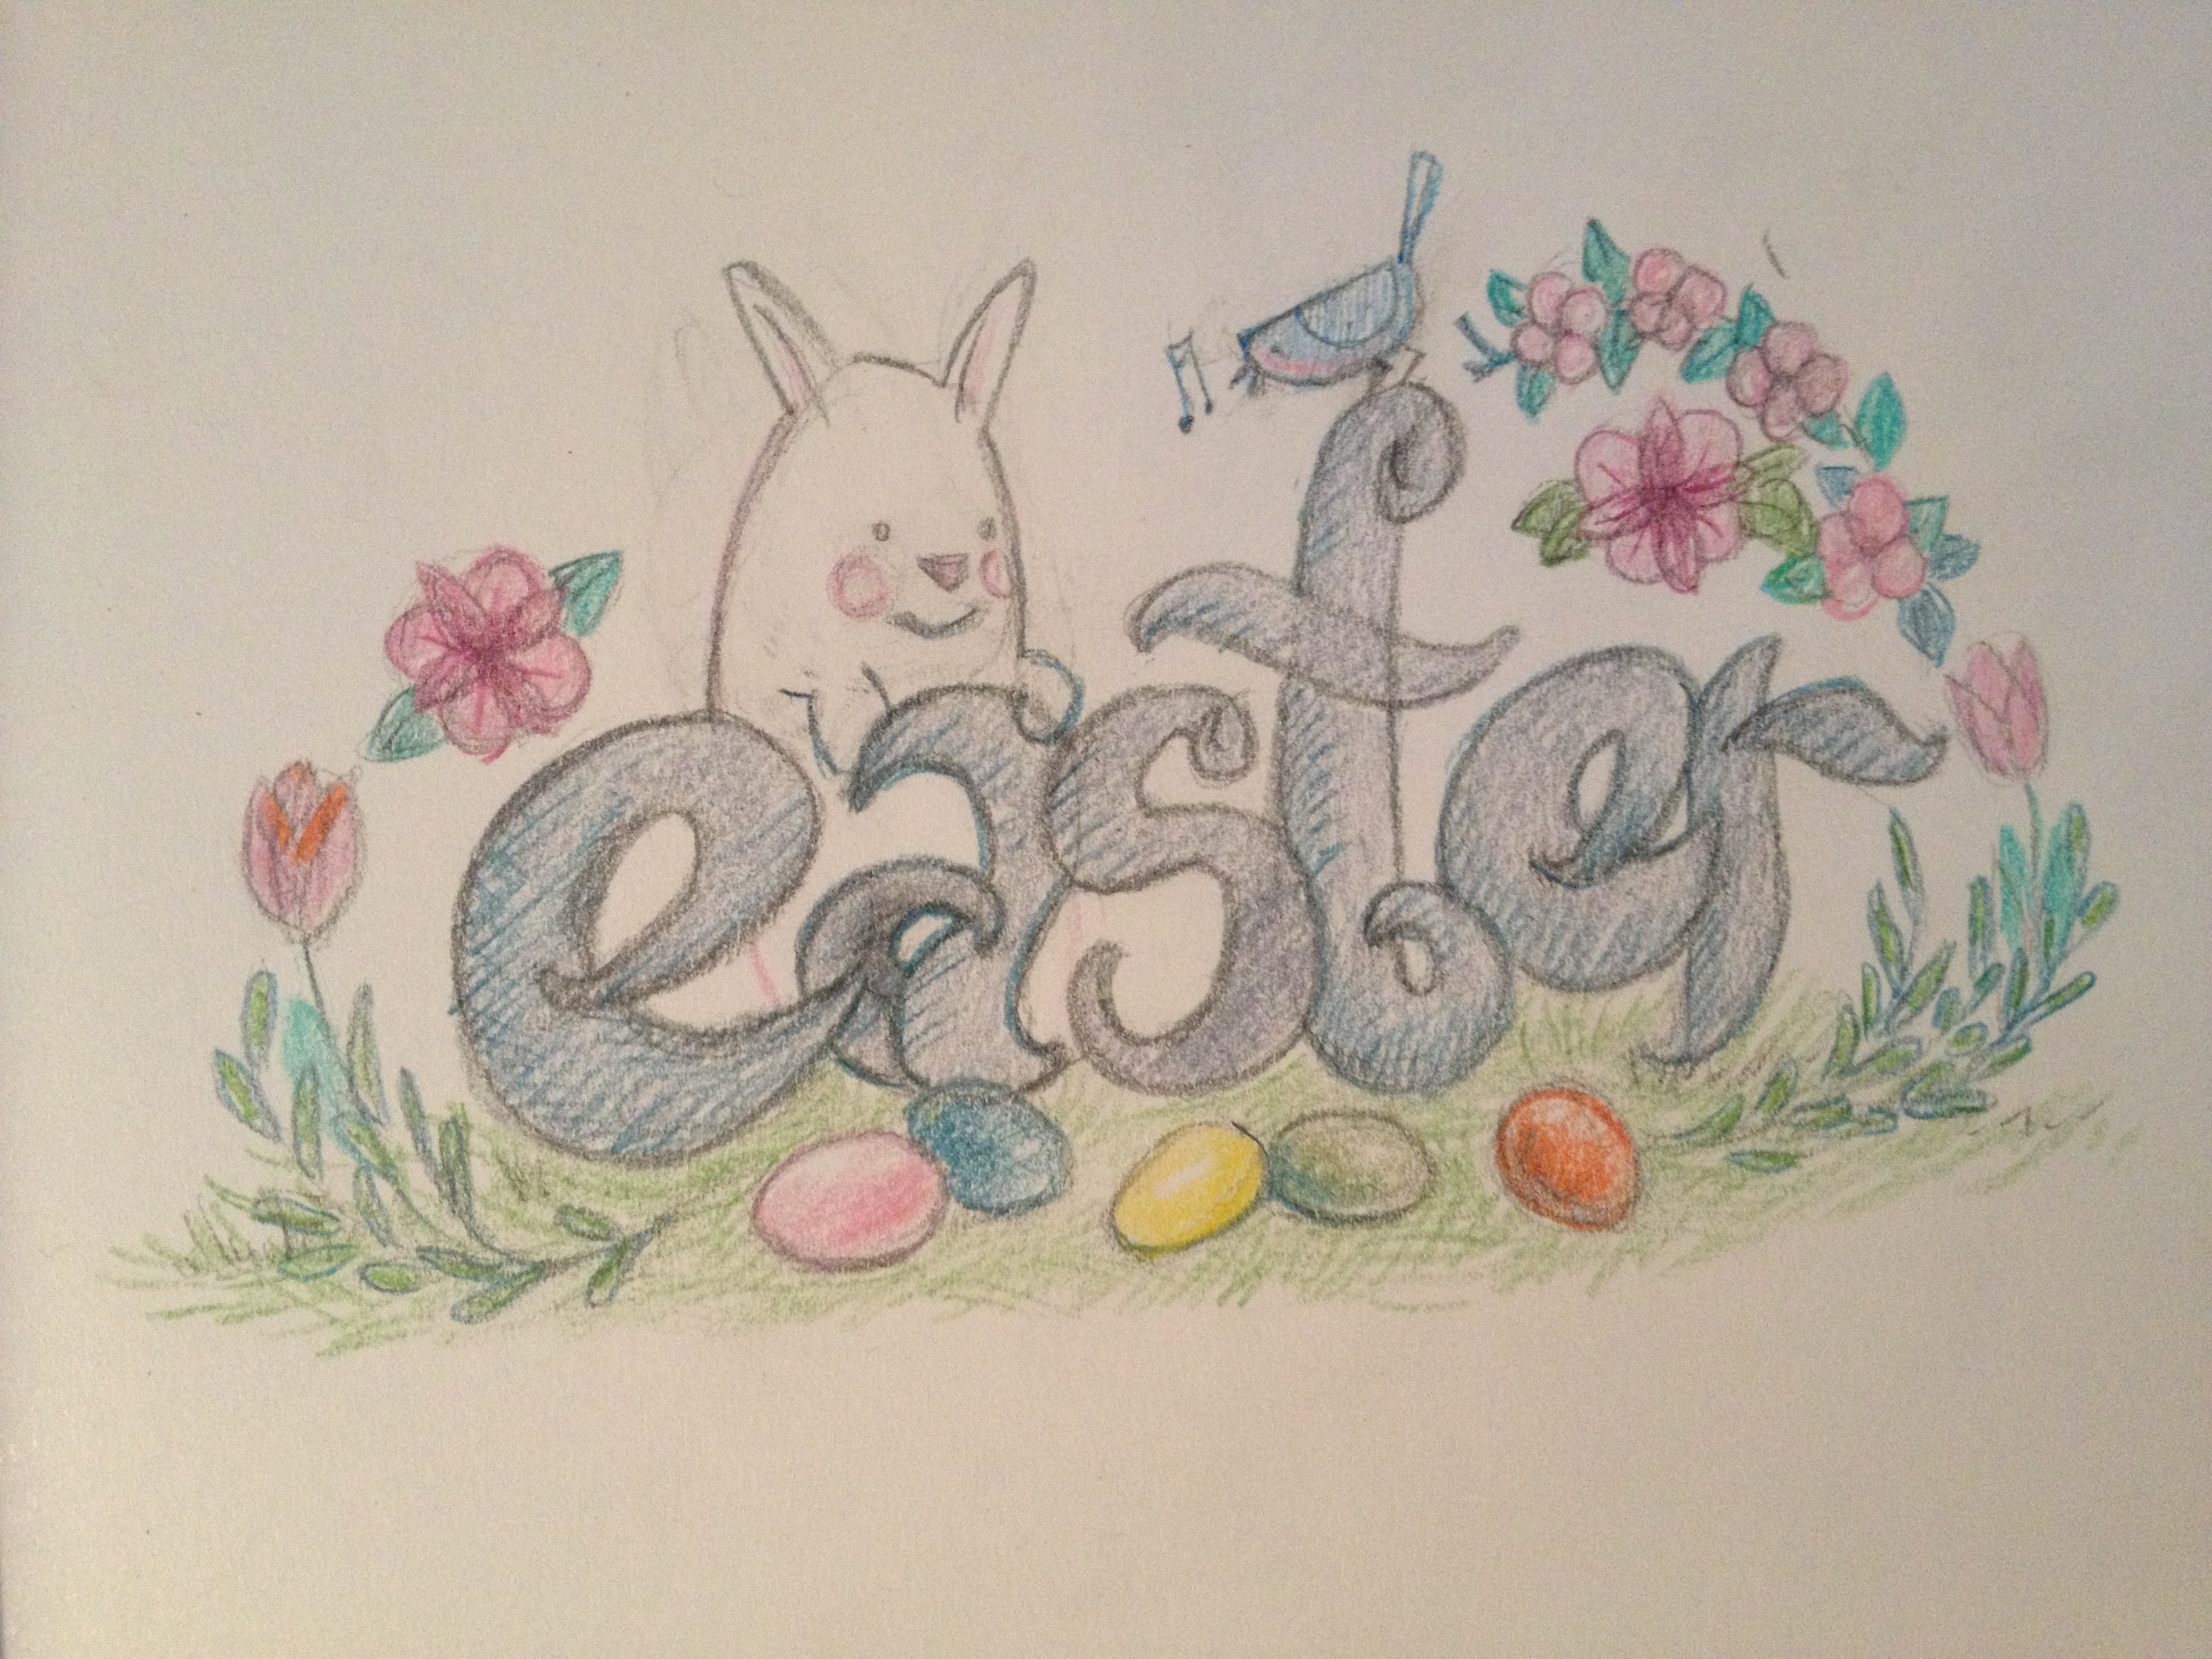 3264x2448 312 Drawing Easter Draw Each Day